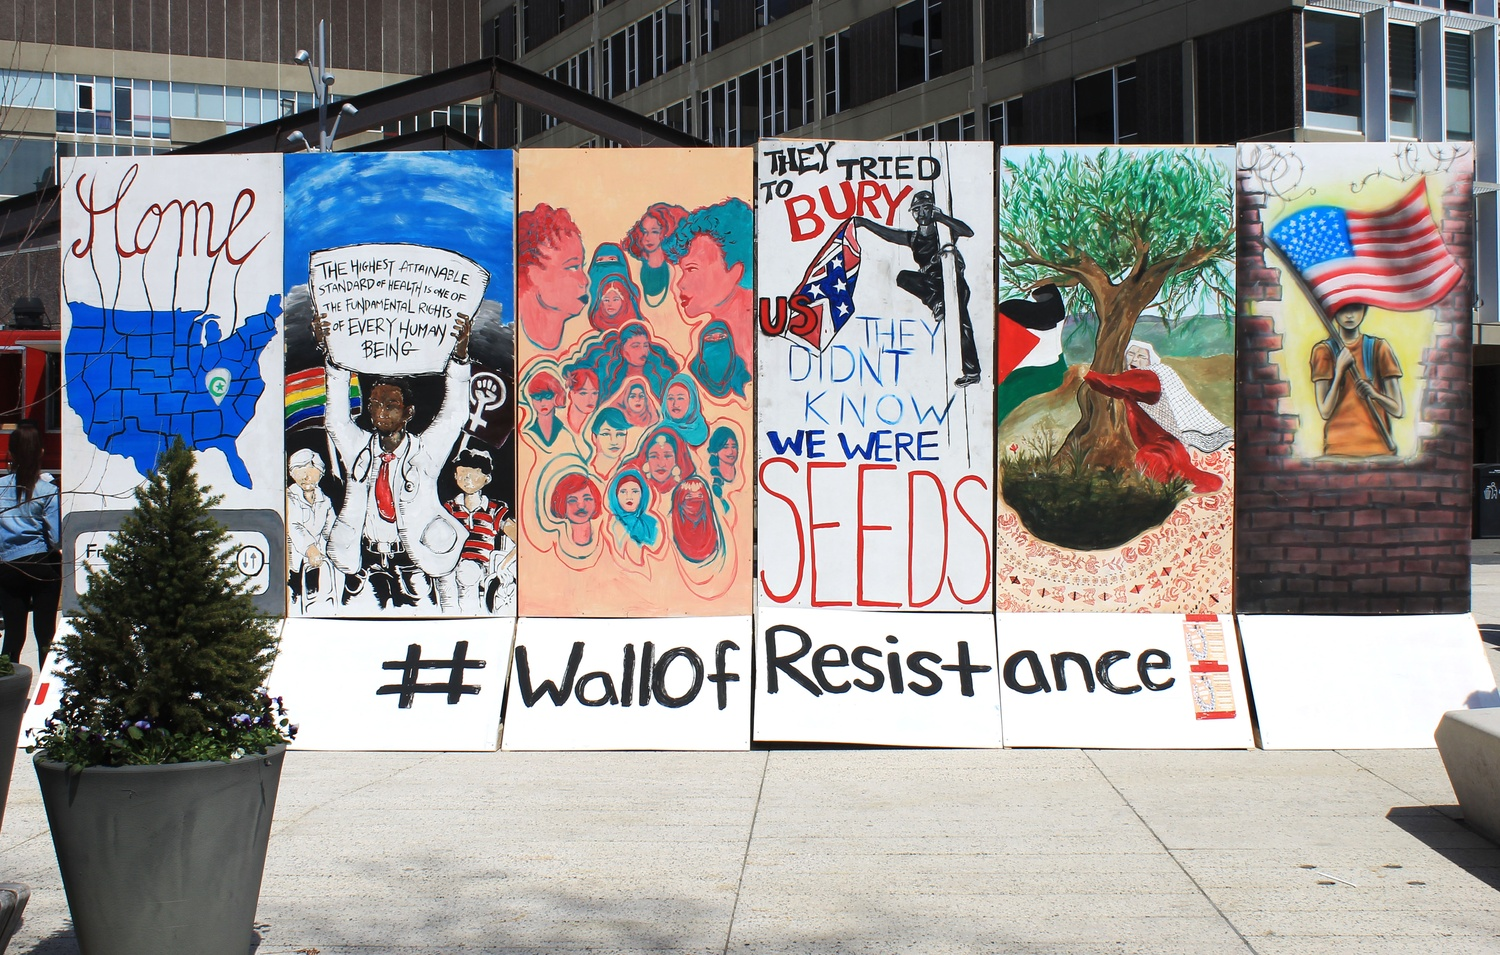 The Wall of Resistance